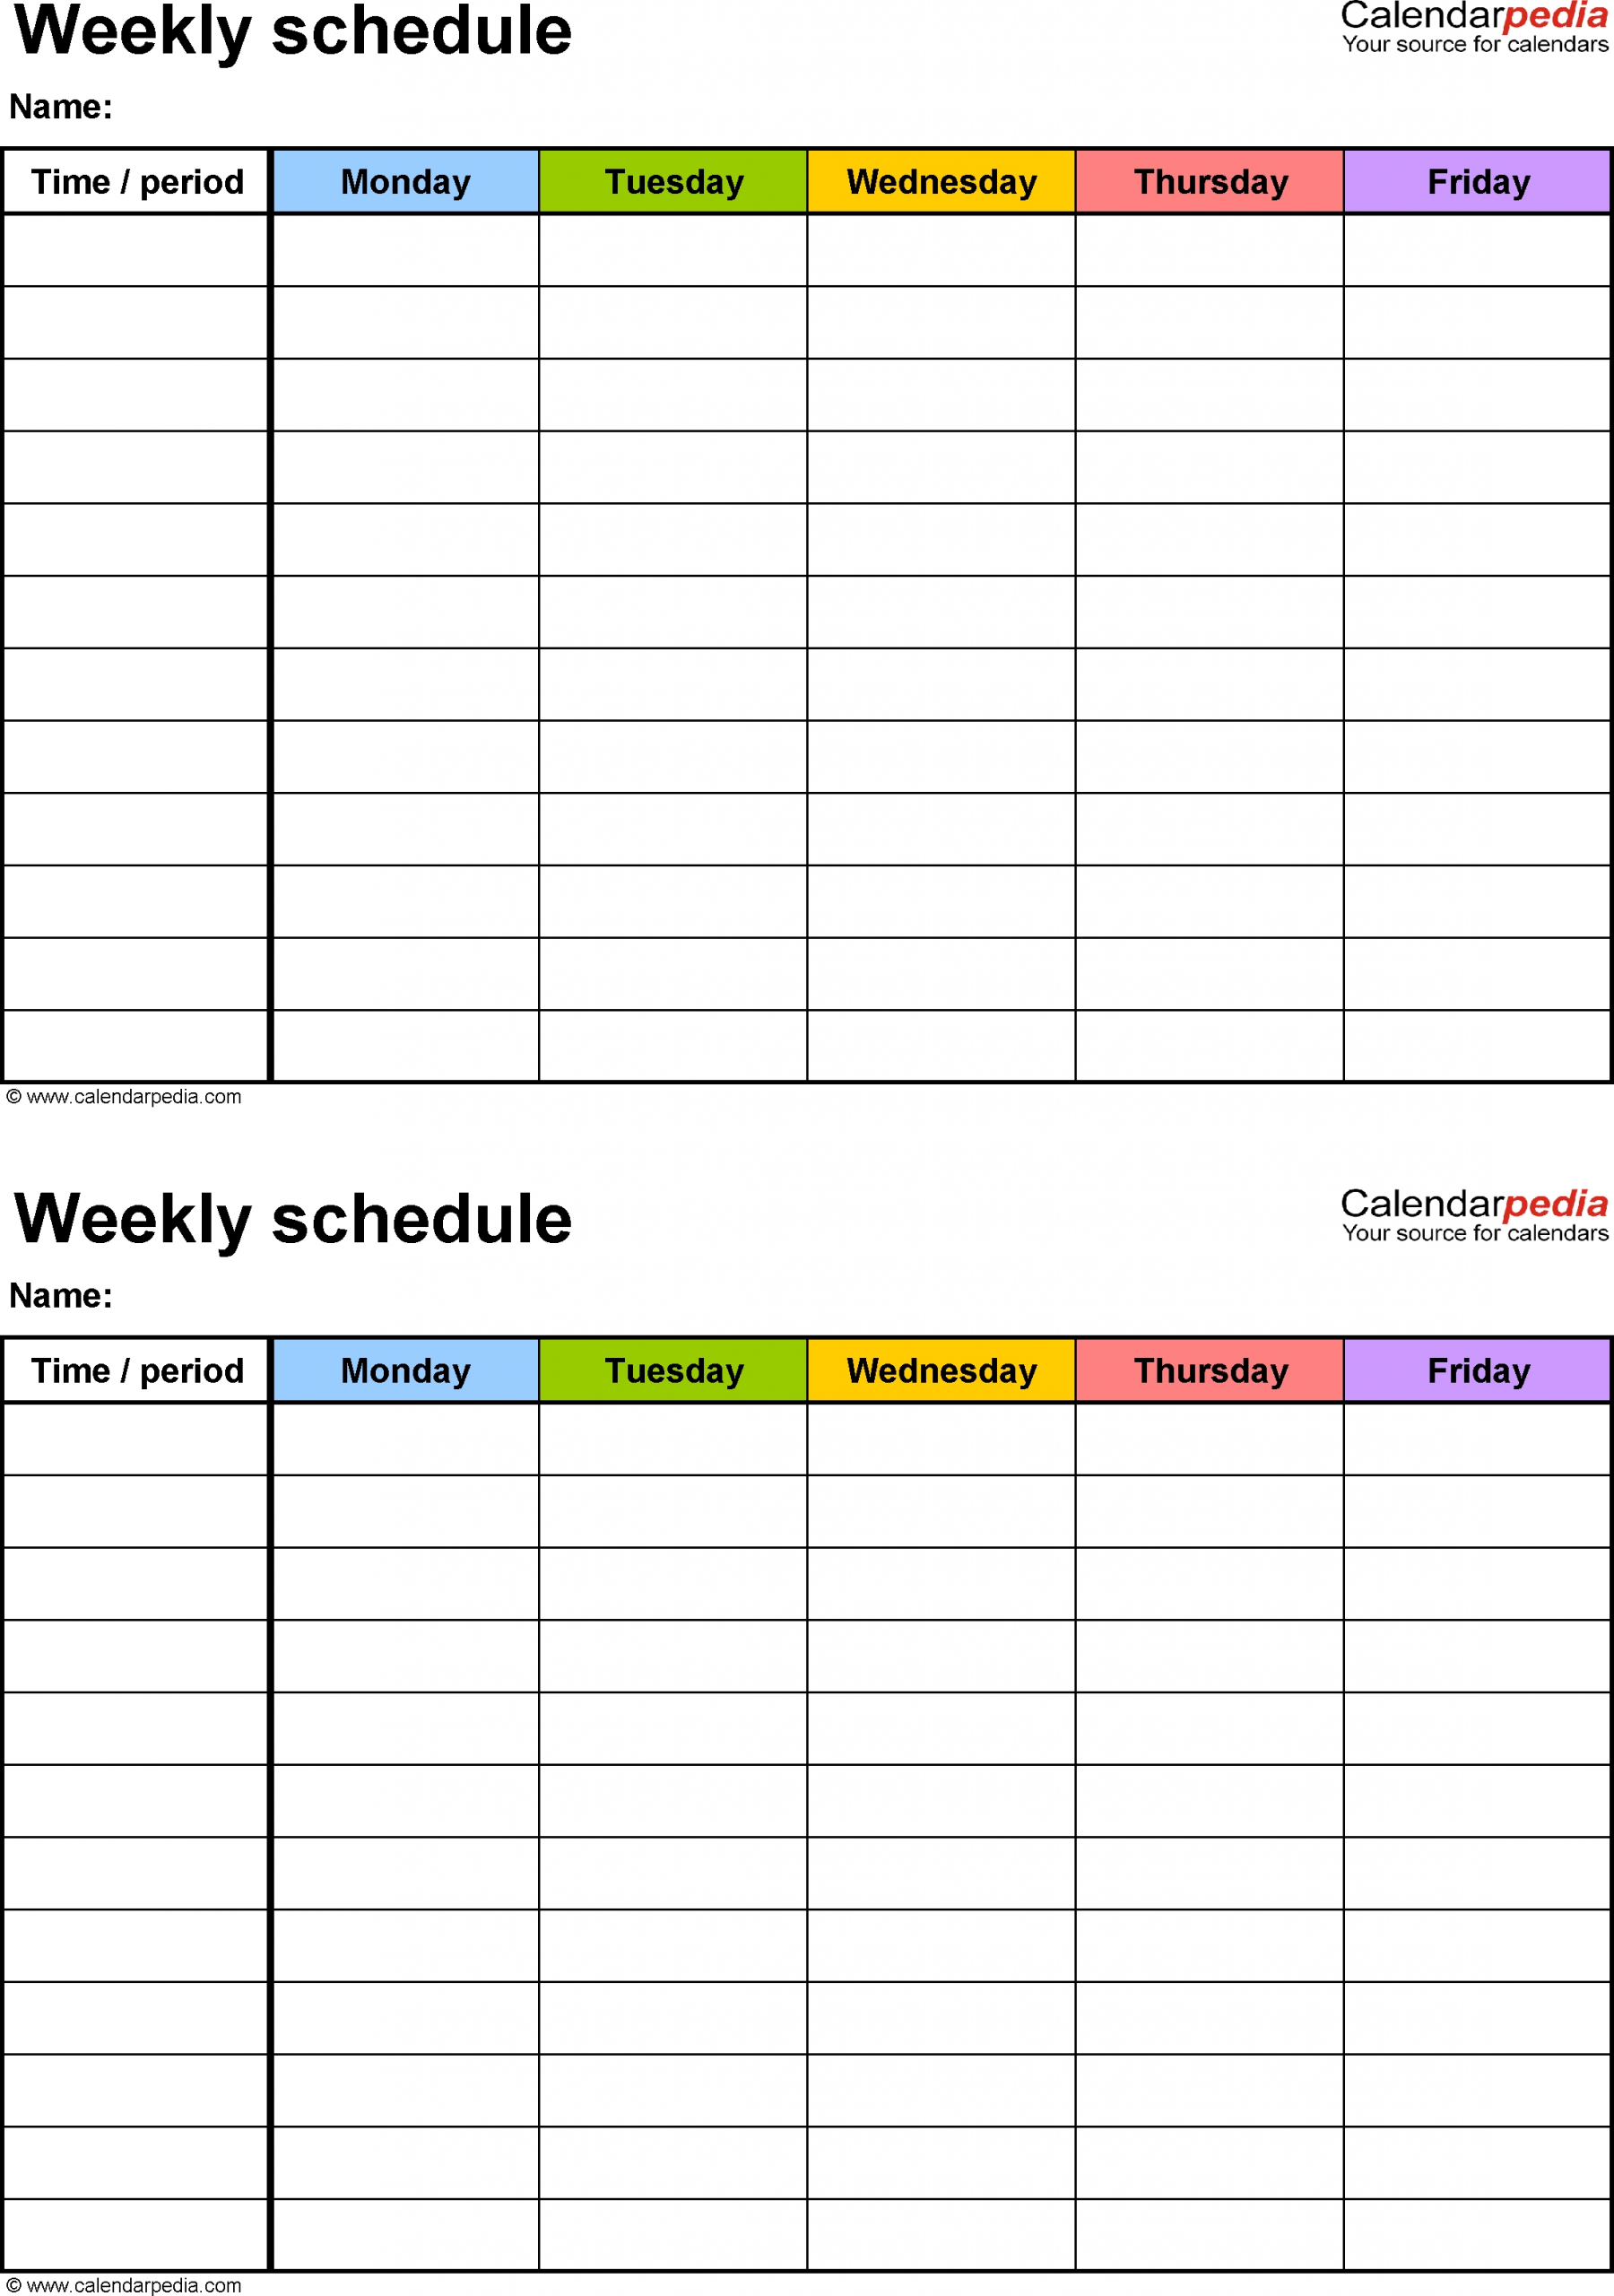 Monday To Friday 2 Week Calendar Template | Calendar Printable Two Week Calendar